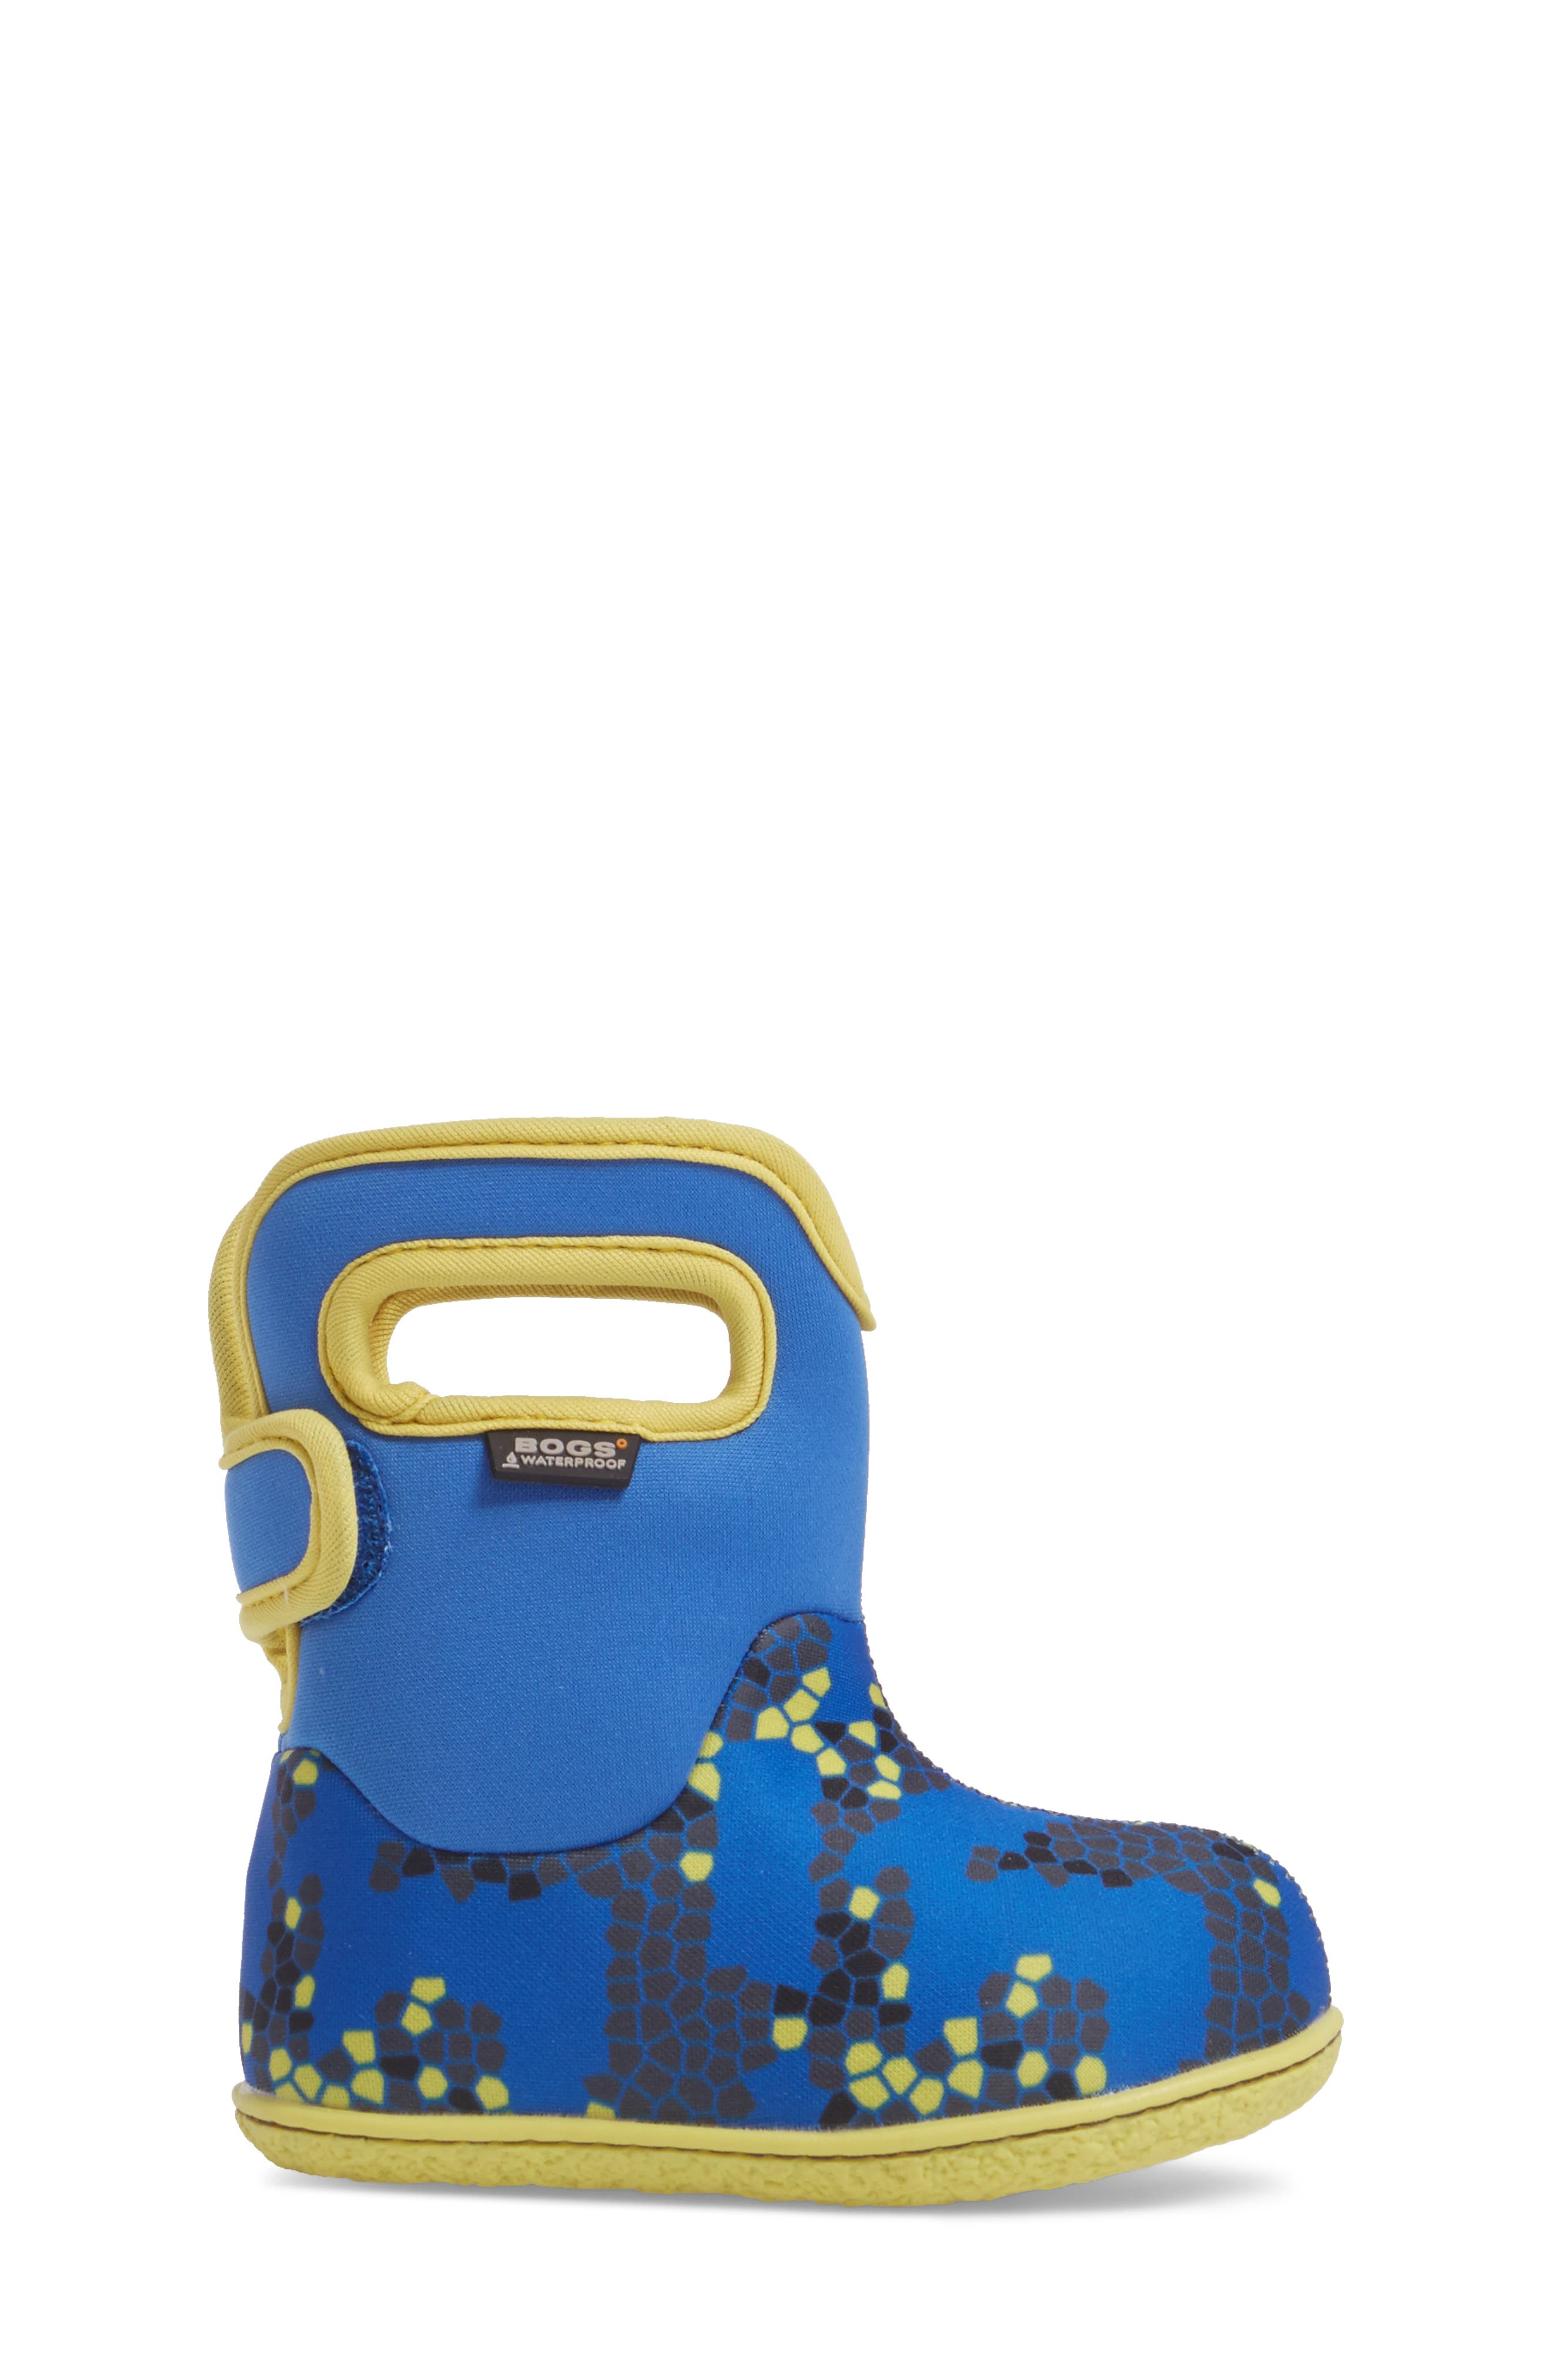 Alternate Image 3  - Bogs Baby Bogs Classic Axel Washable Insulated Waterproof Boot (Baby, Walker & Toddler)